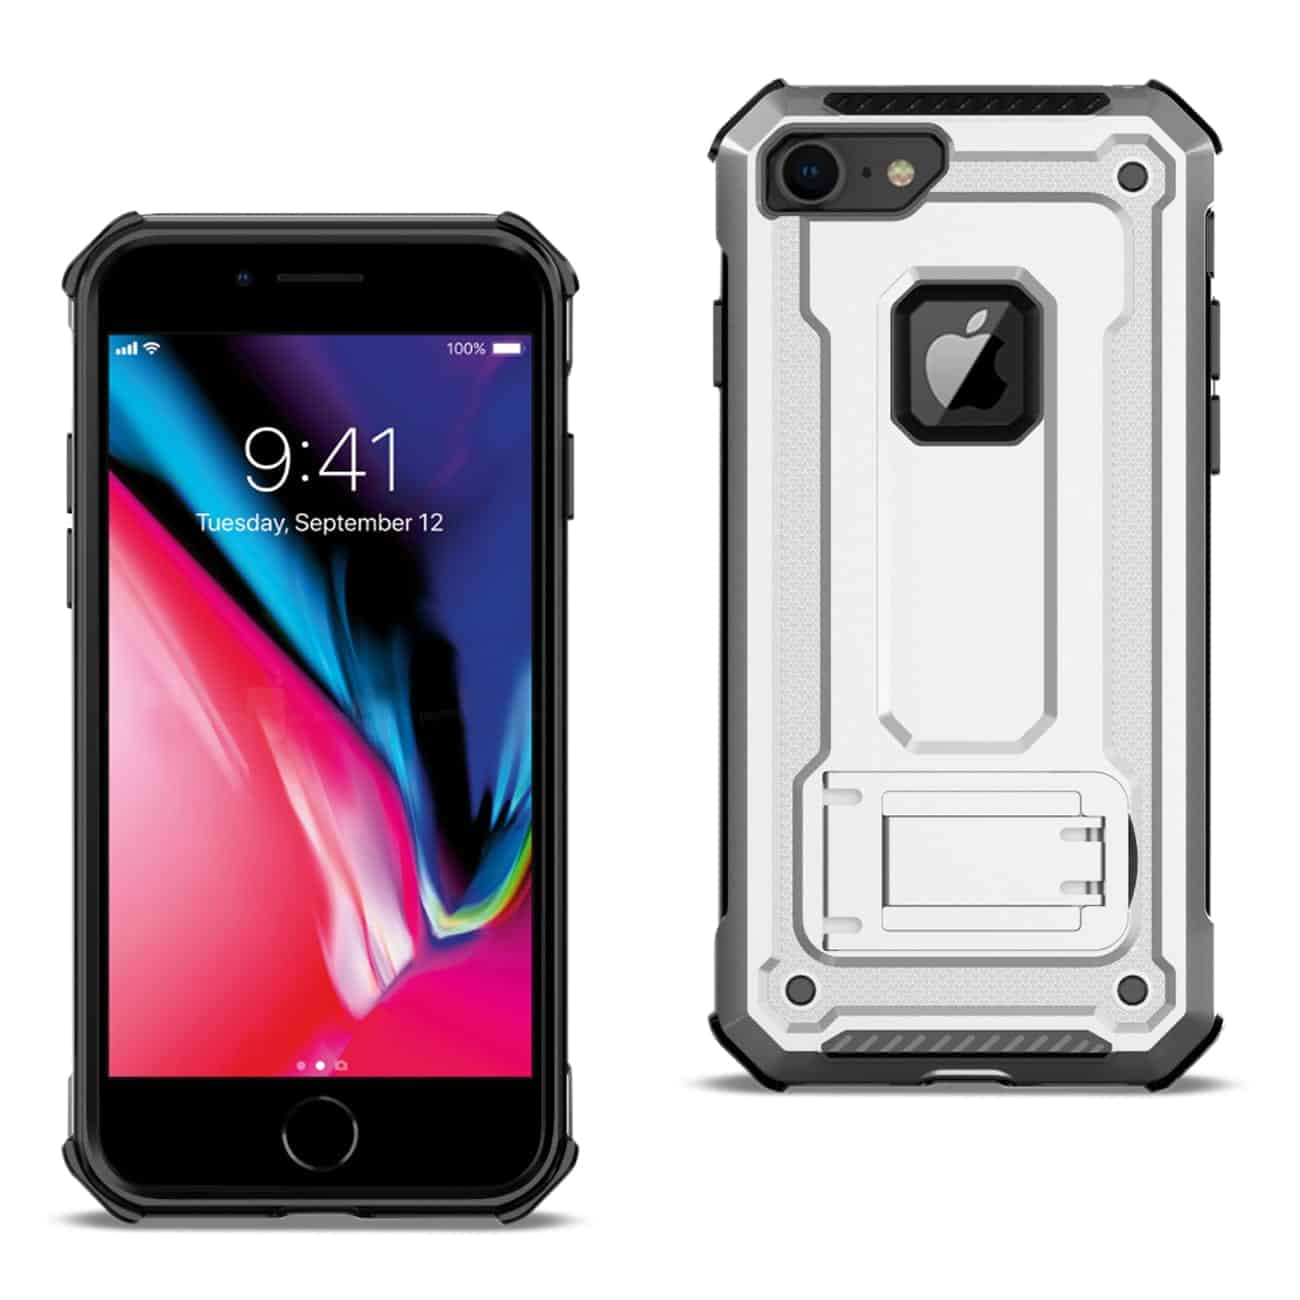 APPLE IPHONE 8 Case With Kickstand In Silver